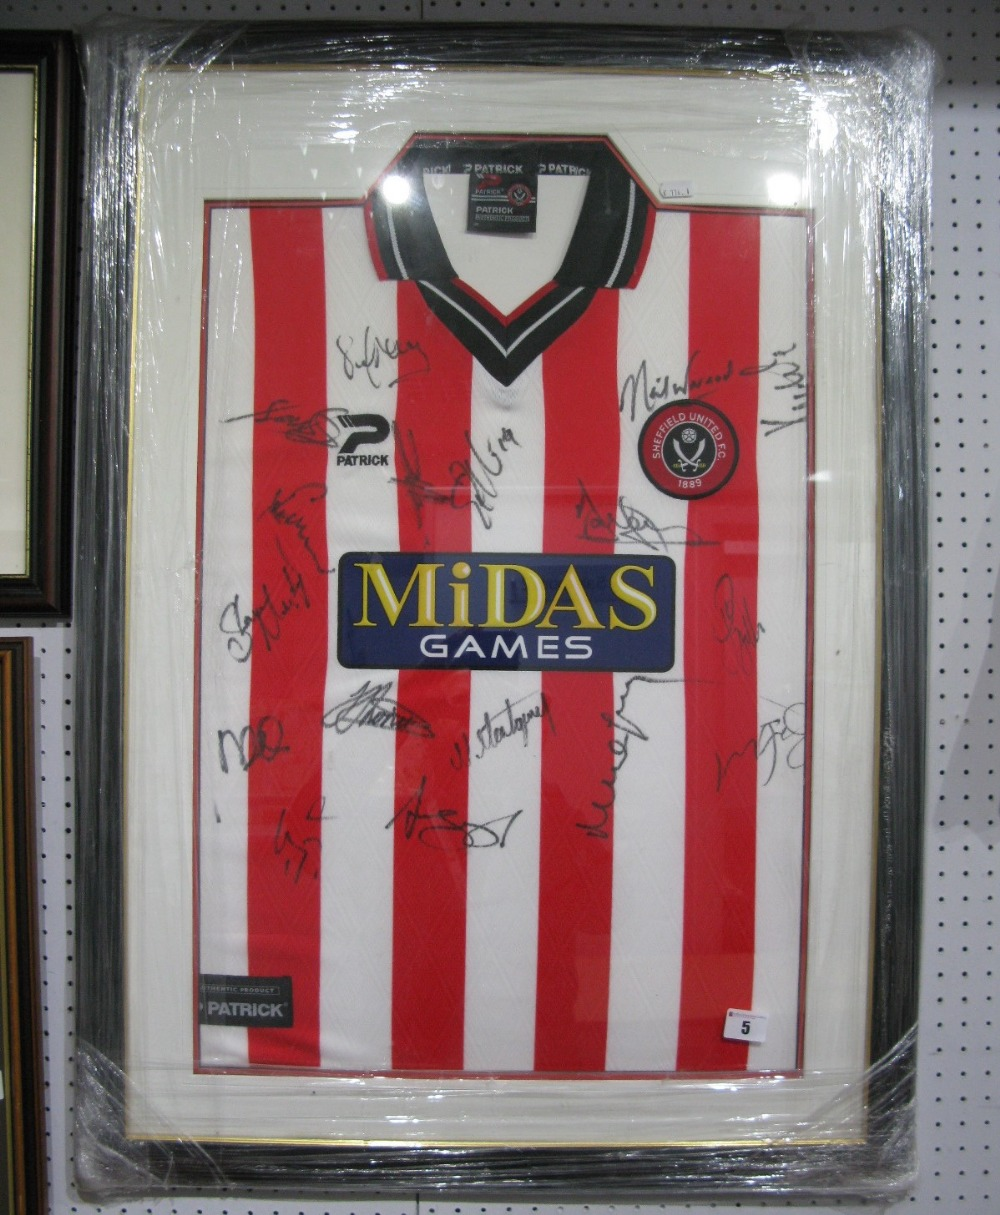 Lot 5 - Sheffield United - Patrick Home Shirt With 'Midas Games', sponsor logo bearing approximately 18